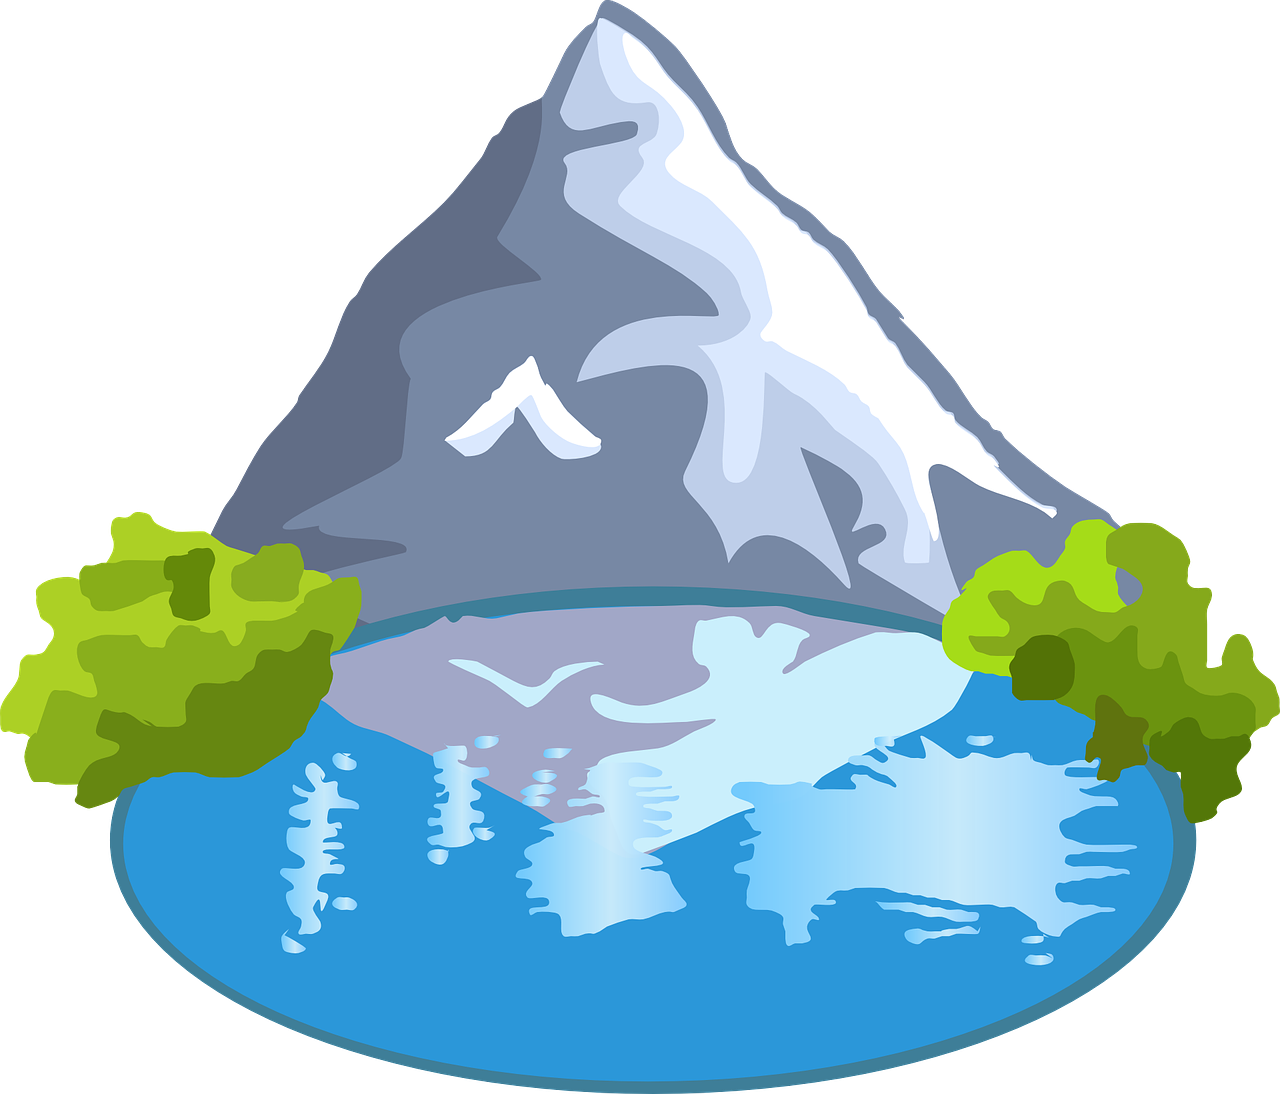 Lake clipart mountain alaska.  collection of images